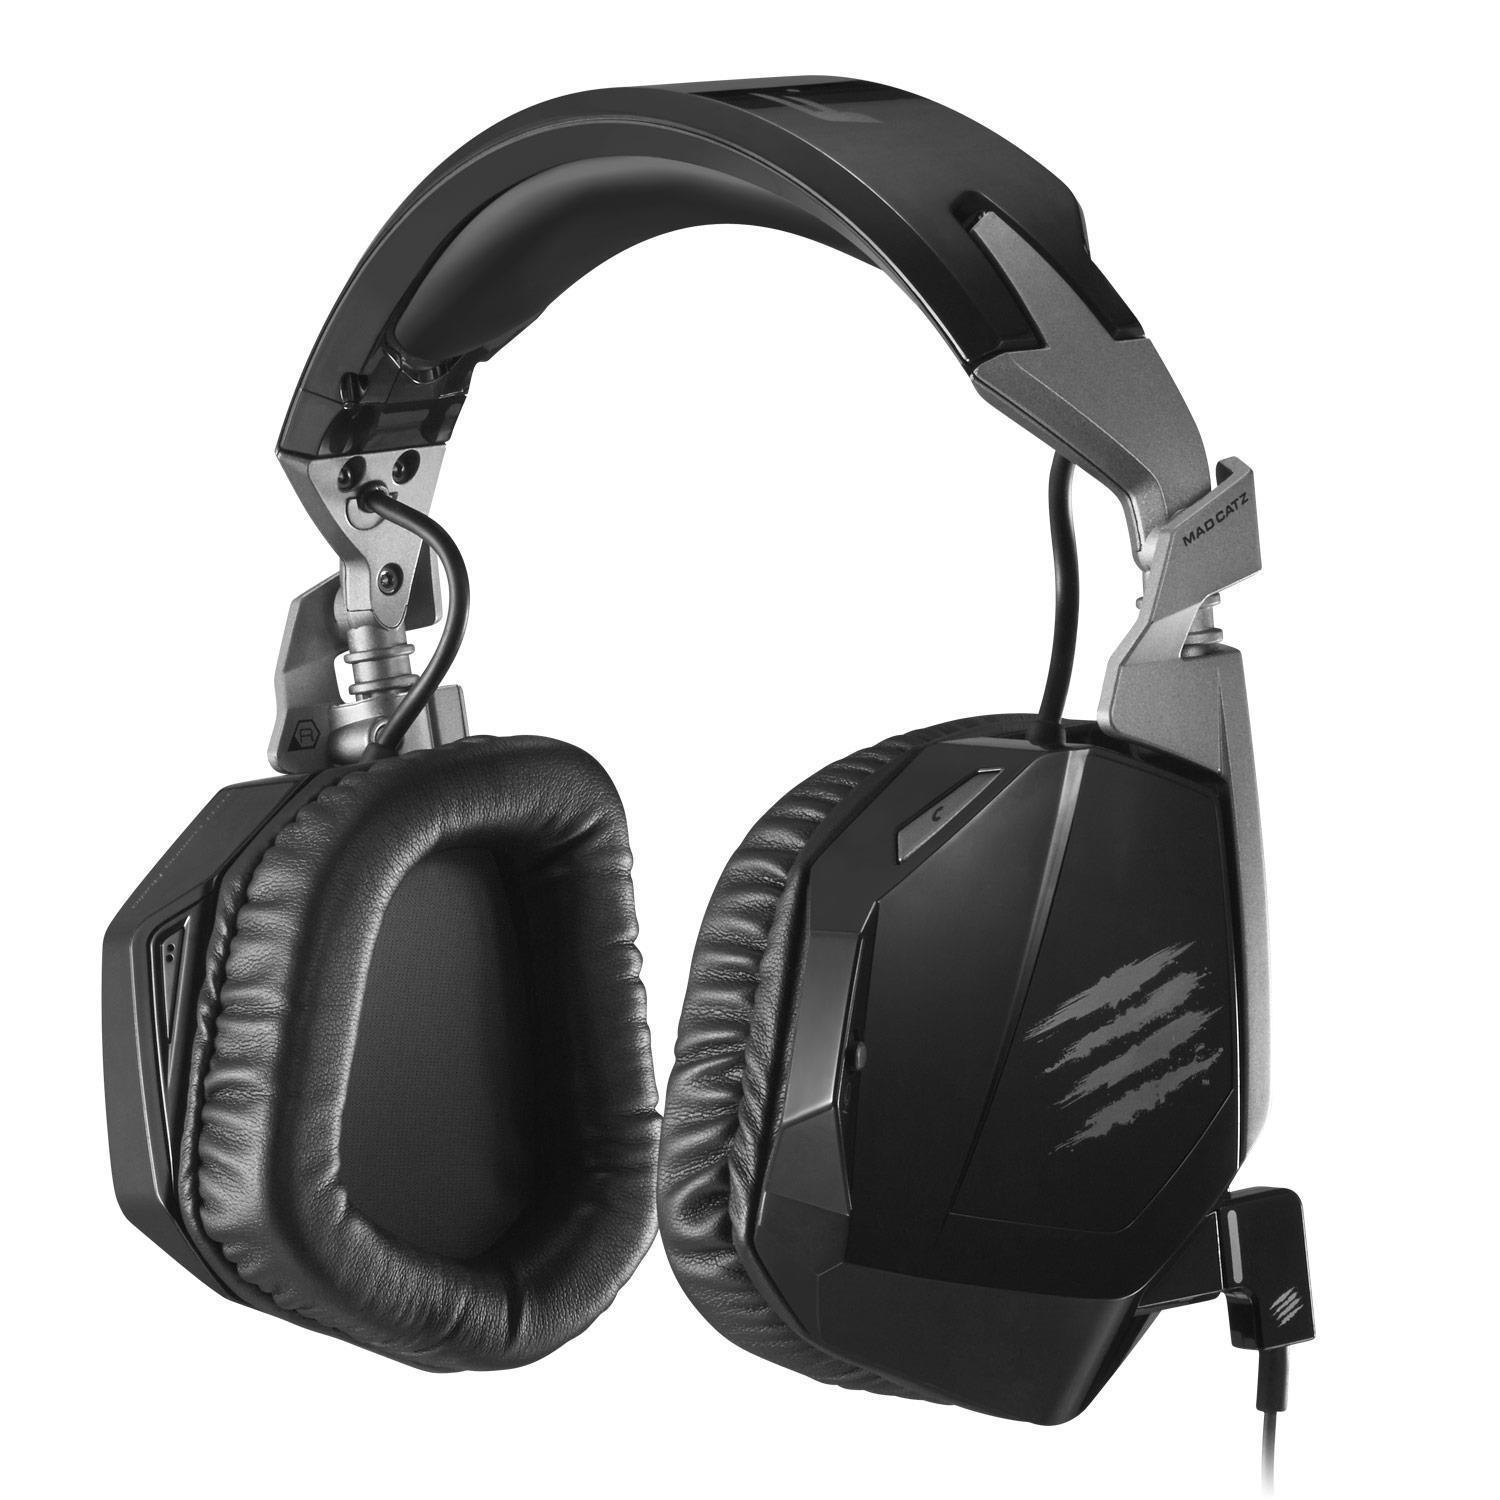 Mad Catz F.R.E.Q. 3 Wired Stereo Gaming Headset (Black)